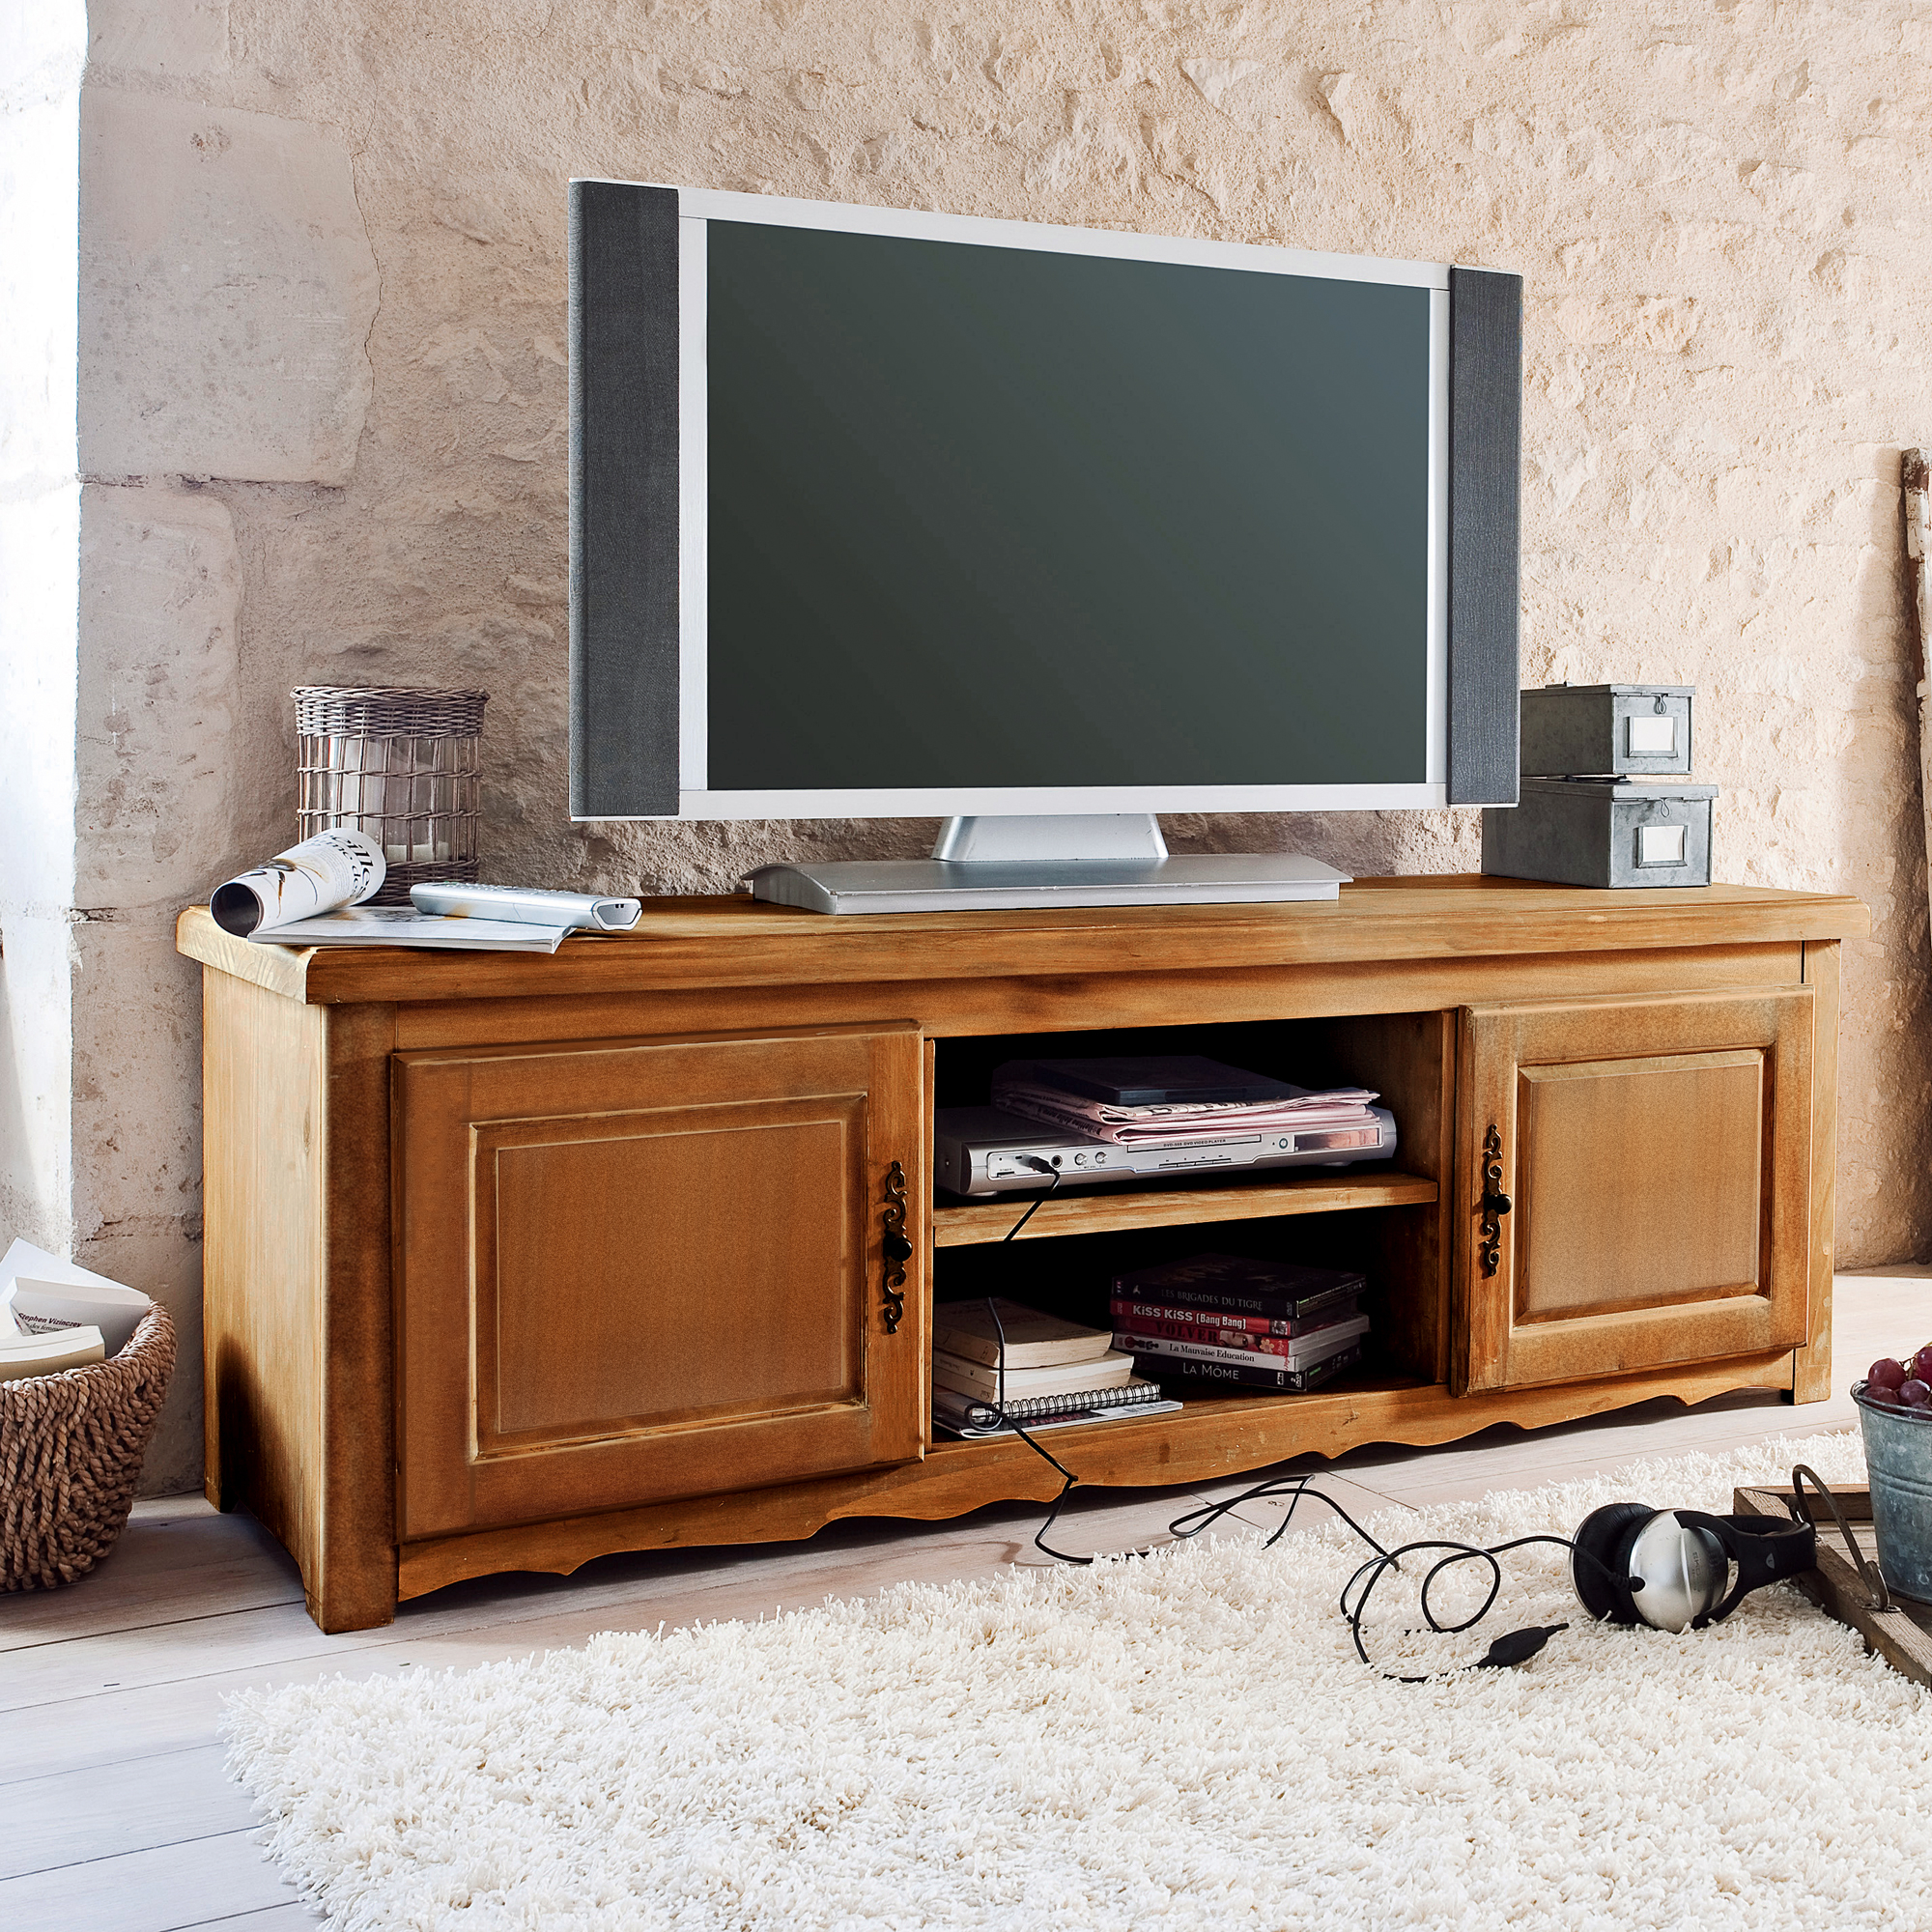 Destockage Tv Ecran Plat Maison Design Wiblia Com # Meuble Tv Destockage